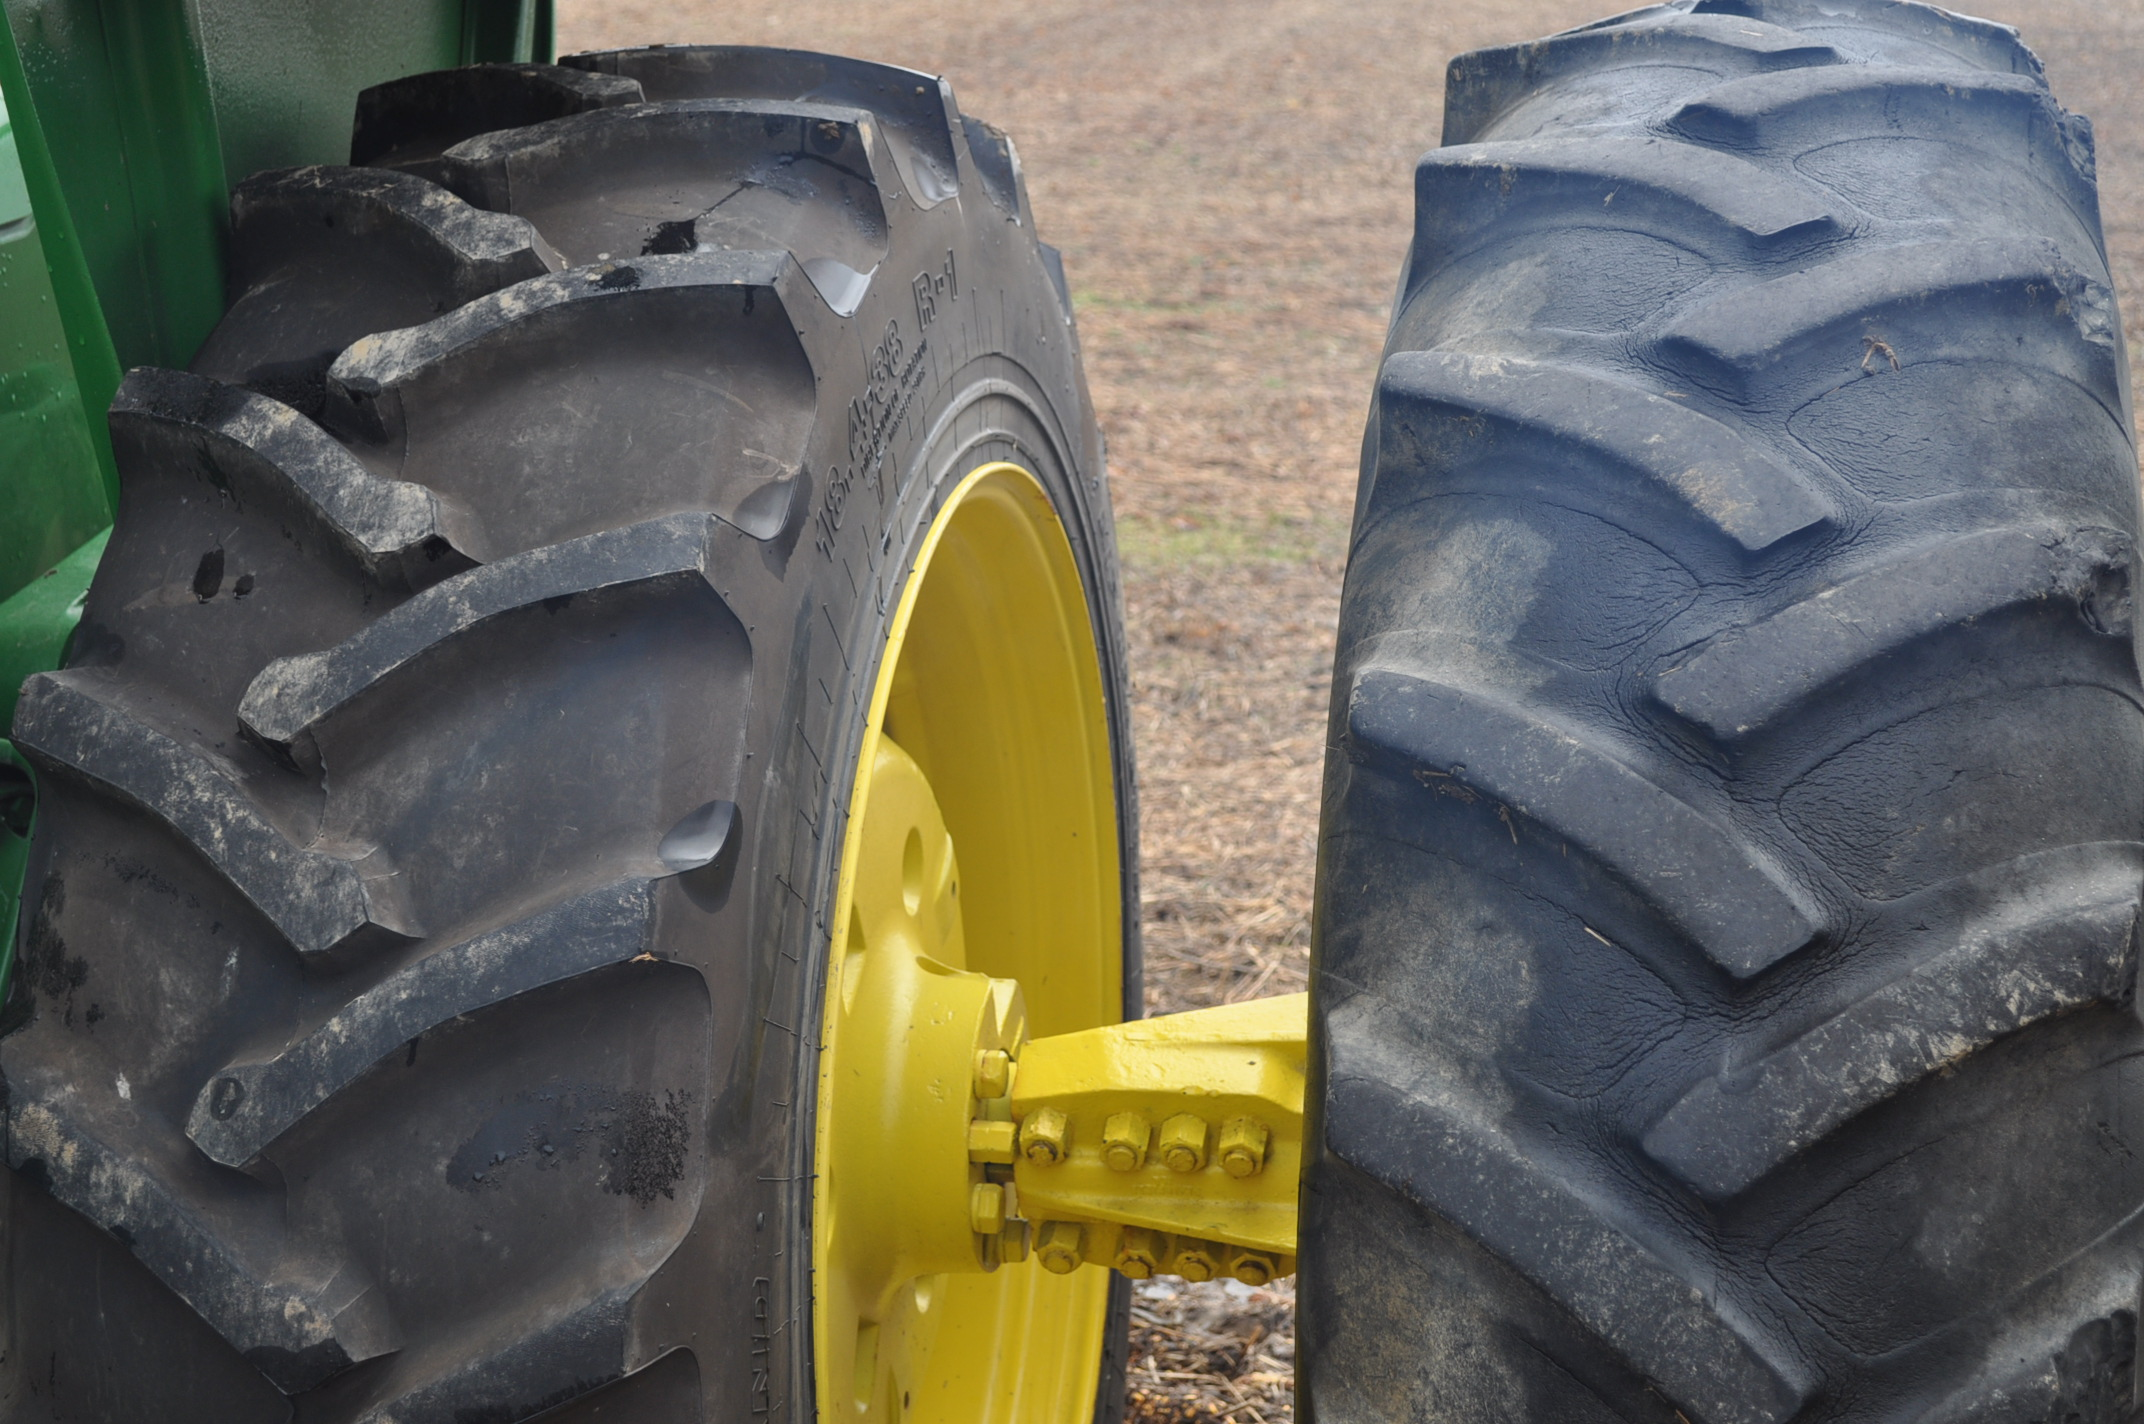 John Deere 4520 tractor, ***4520 frame with 4620 engine**** diesel, 18.4-38 new inside rear - Image 6 of 17